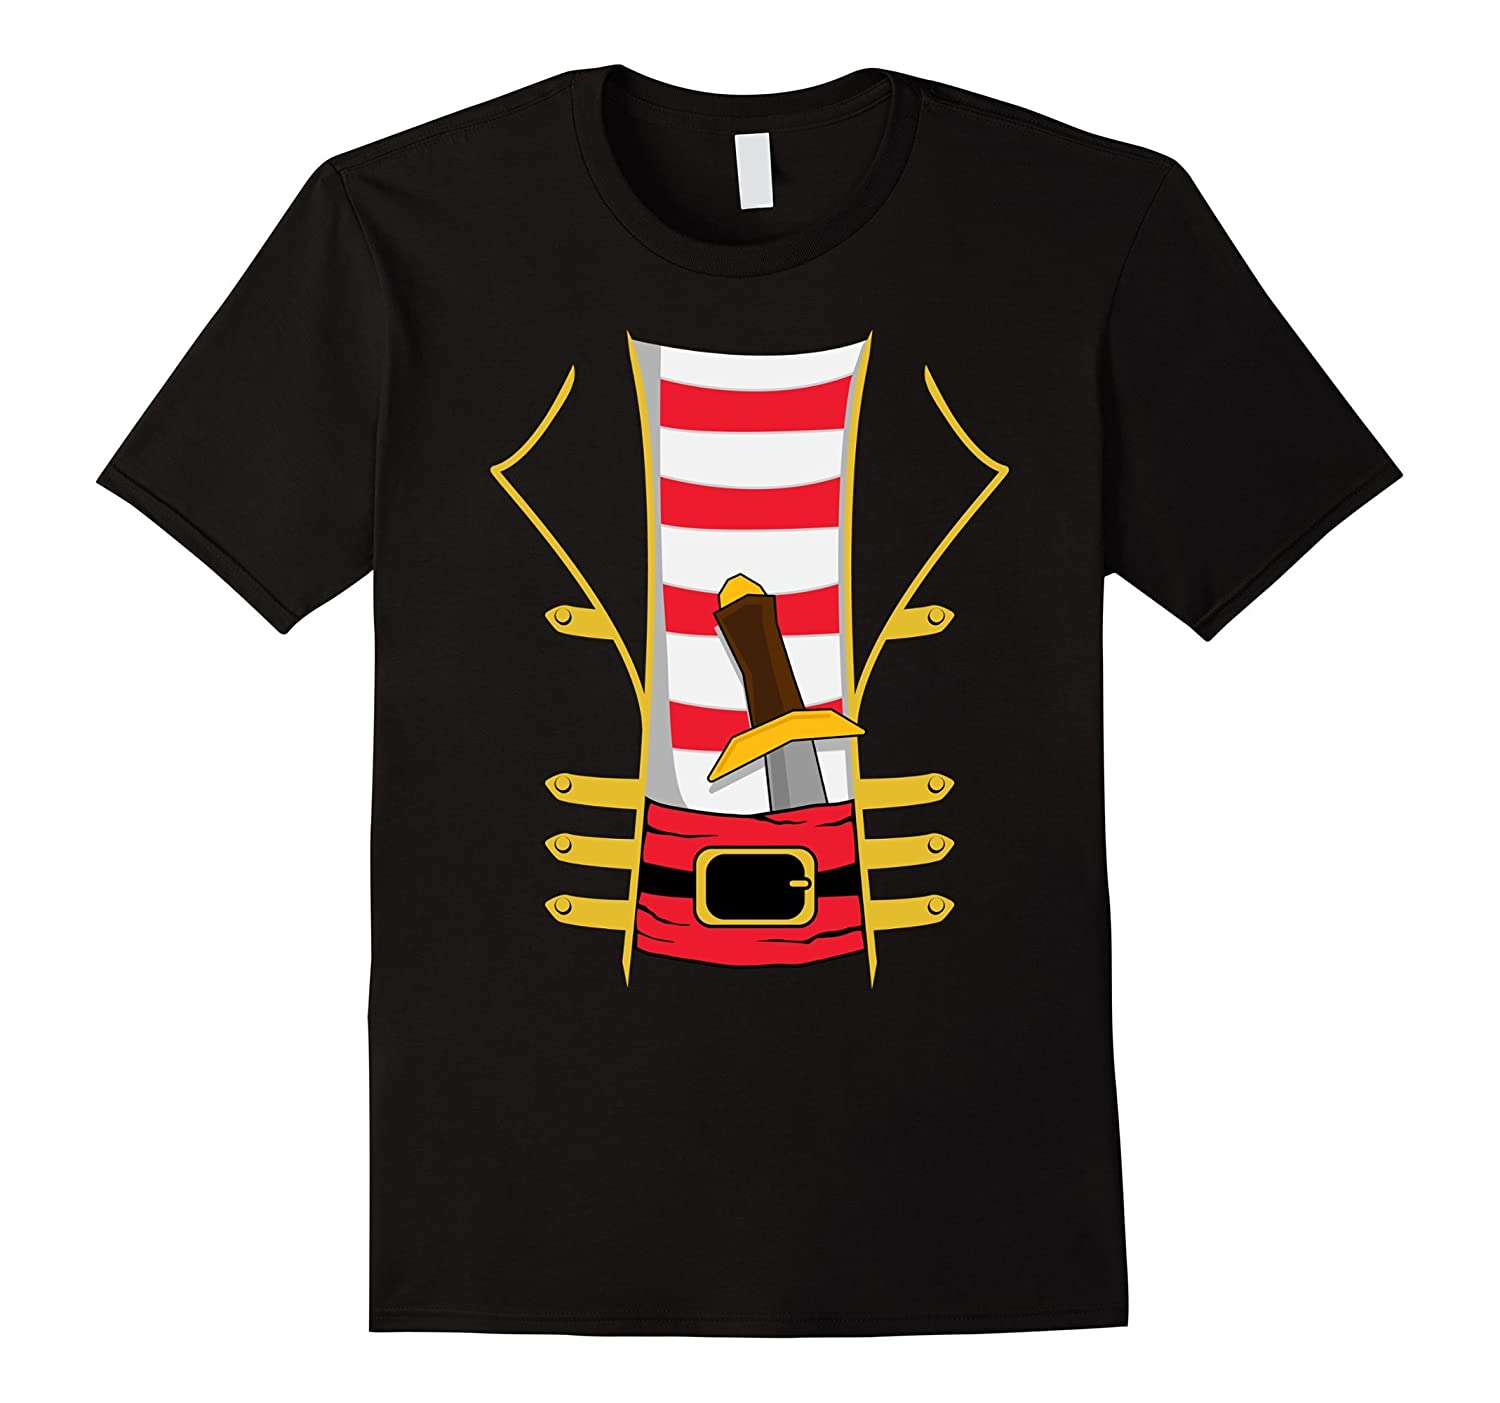 Pirate with Sword Halloween Costume T-shirt